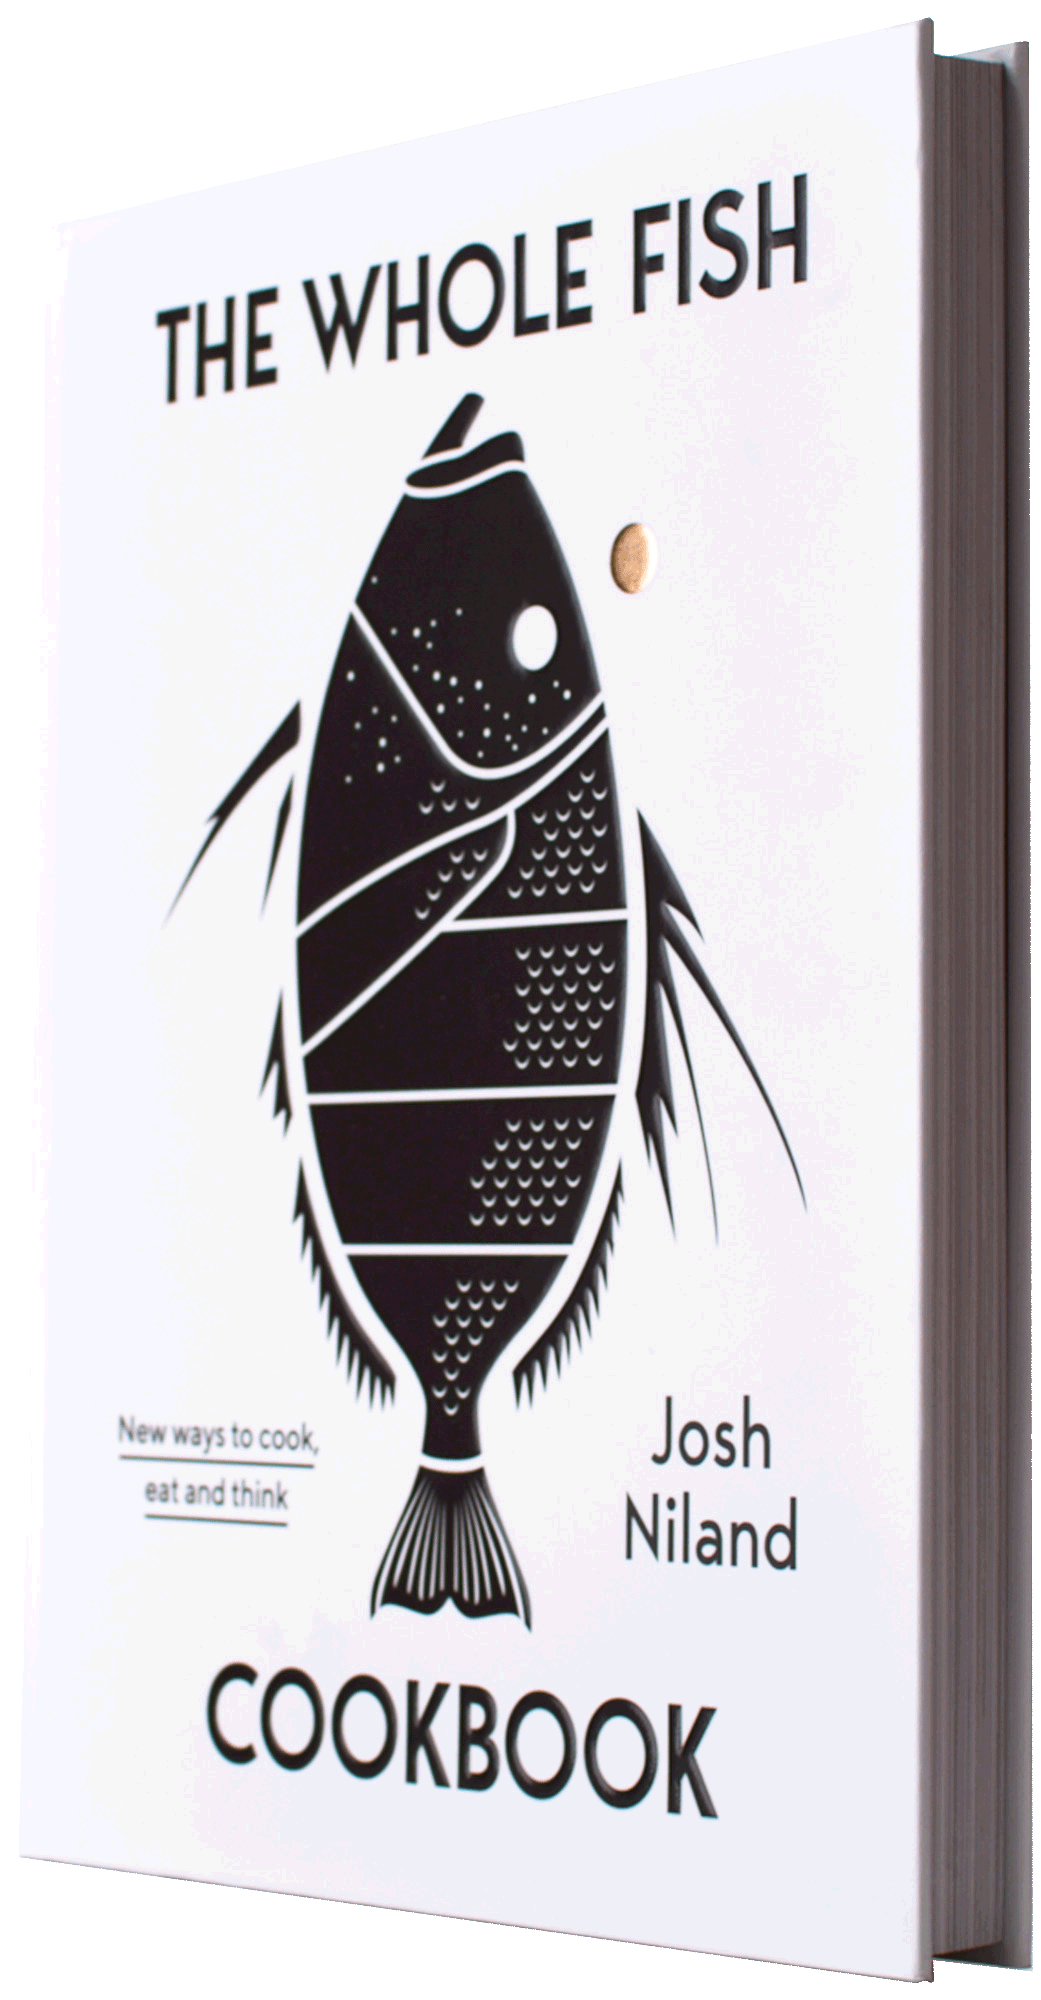 Whole Fish Cookbook book cover